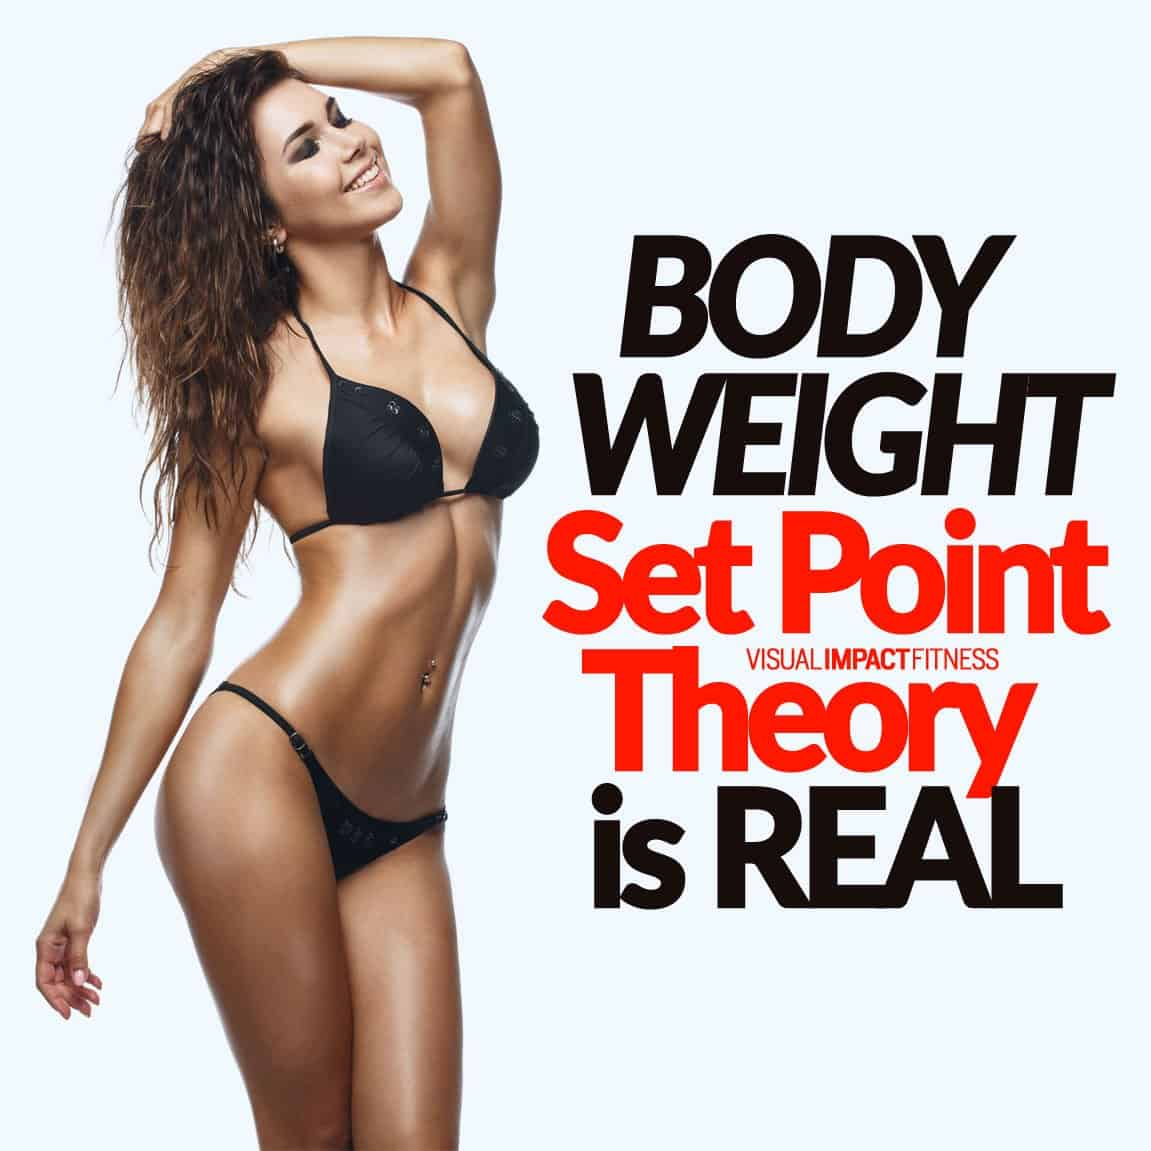 Body Weight Set Point Theory is REAL